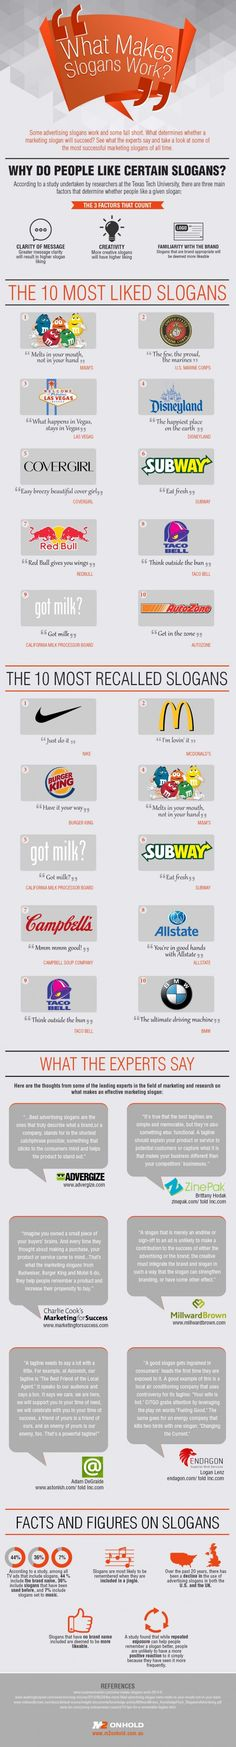 How to Write a Great Tagline or Slogan